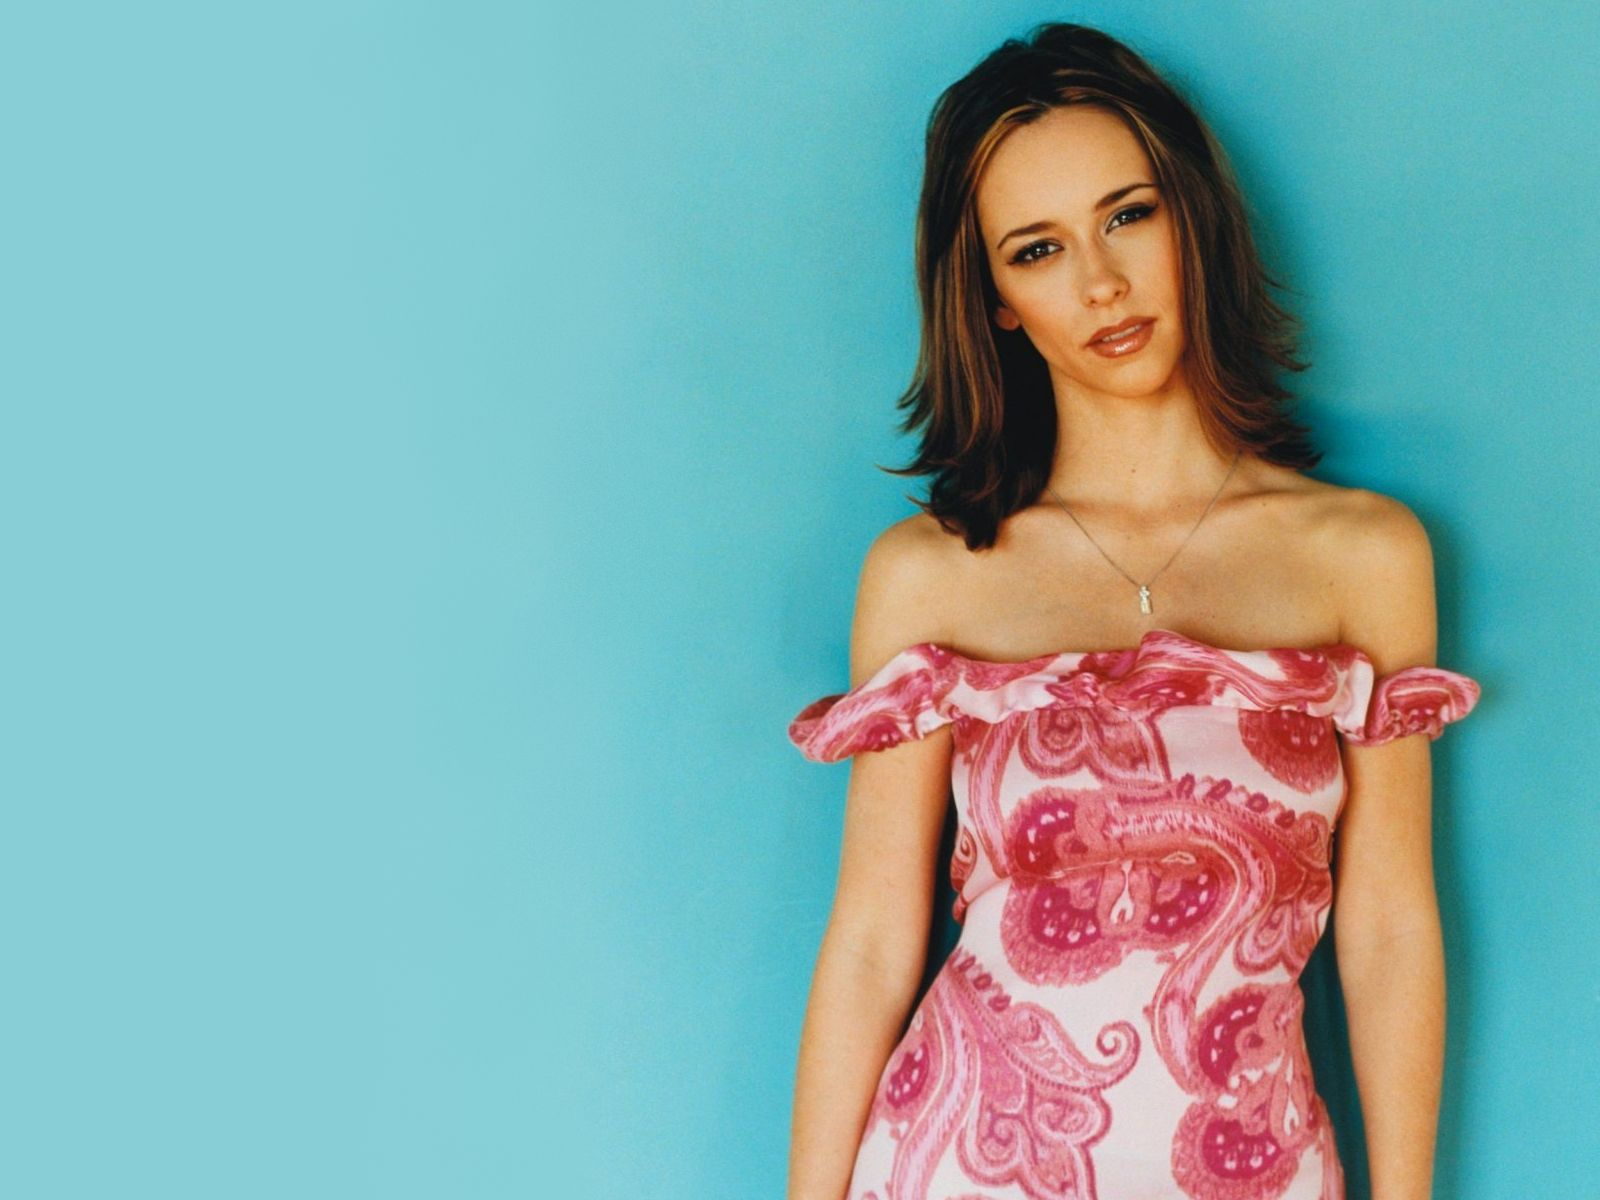 Wallpaper Hd Jennifer Love : Jennifer Love Hewitt Wallpapers High Resolution and Quality Download